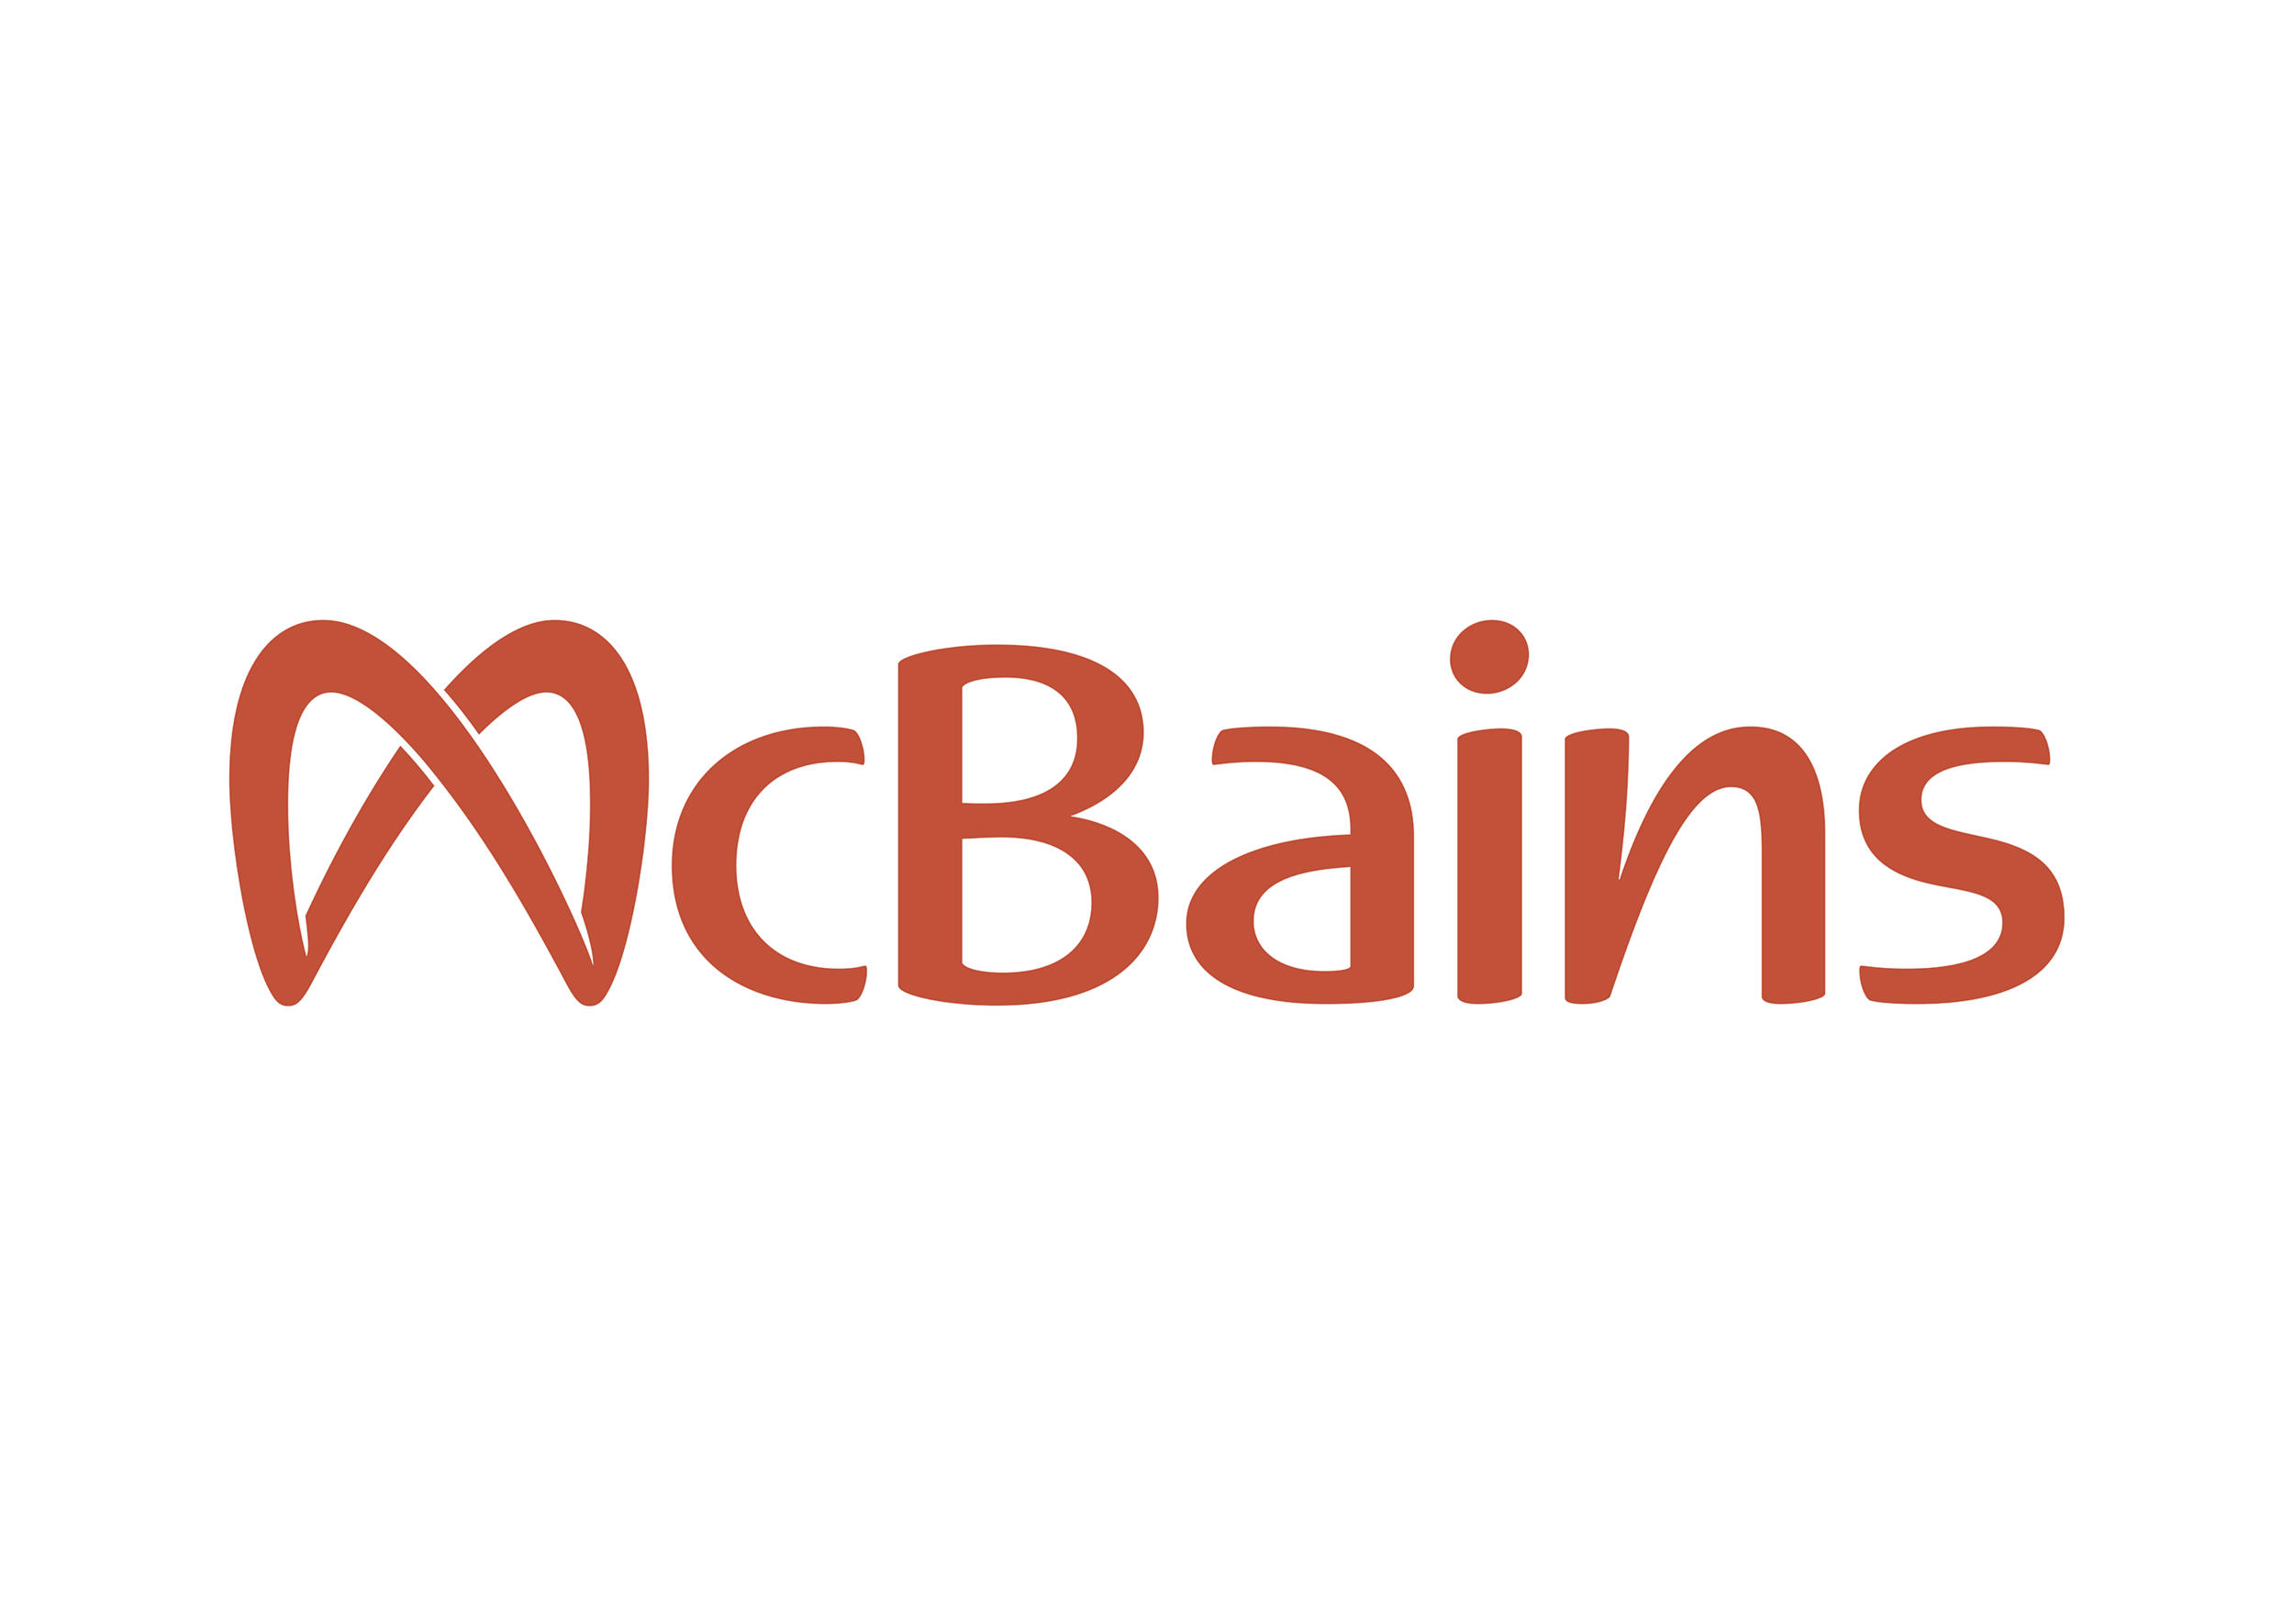 McBAINS_LOGO_ORANGE_rgb copy.png